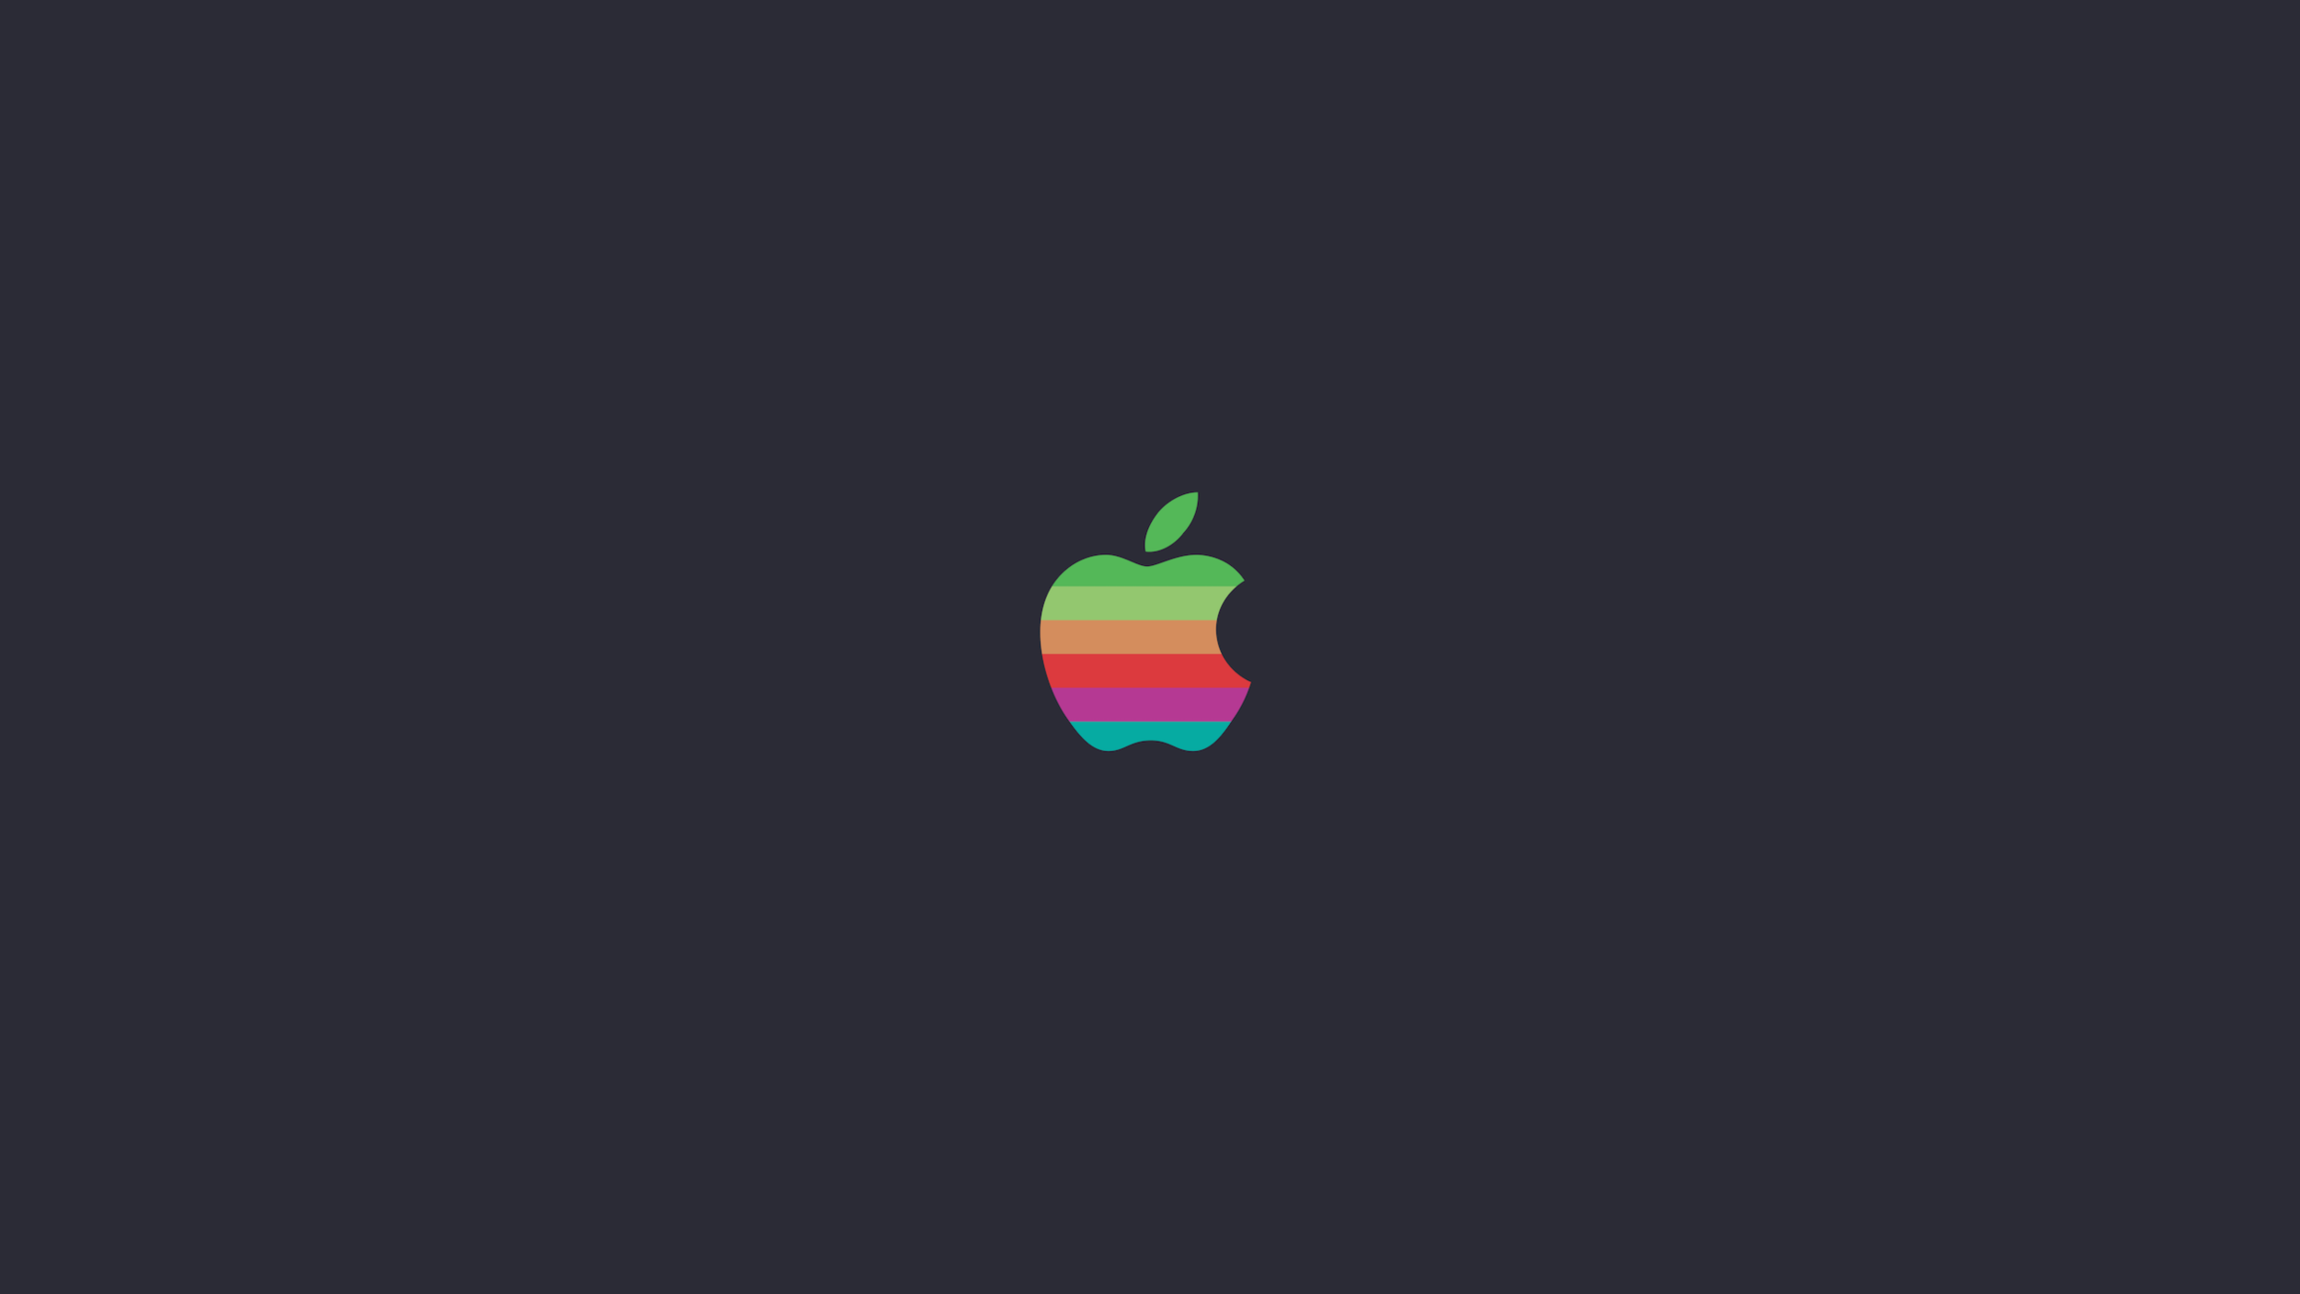 Apple Logo High Quality Wallpapers